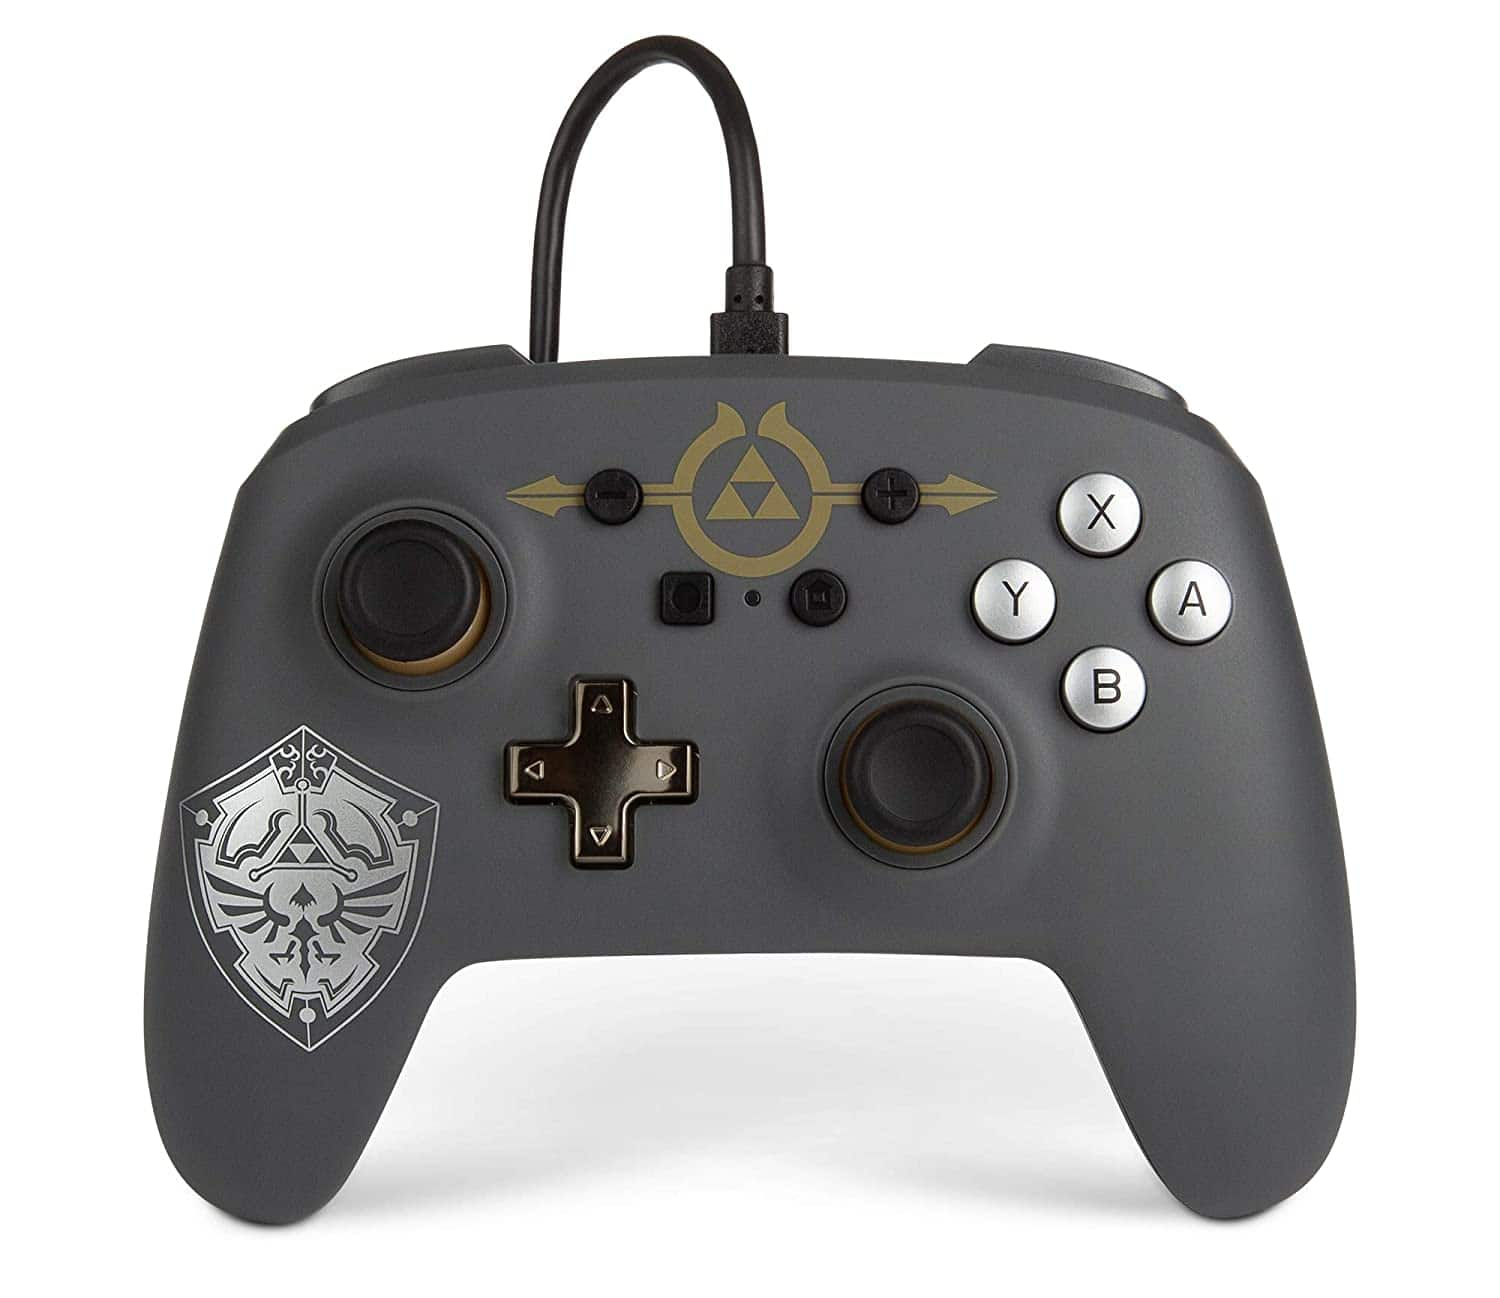 PowerA Enhanced Wired Controller for Nintendo Switch - Hylian Shield $14.99